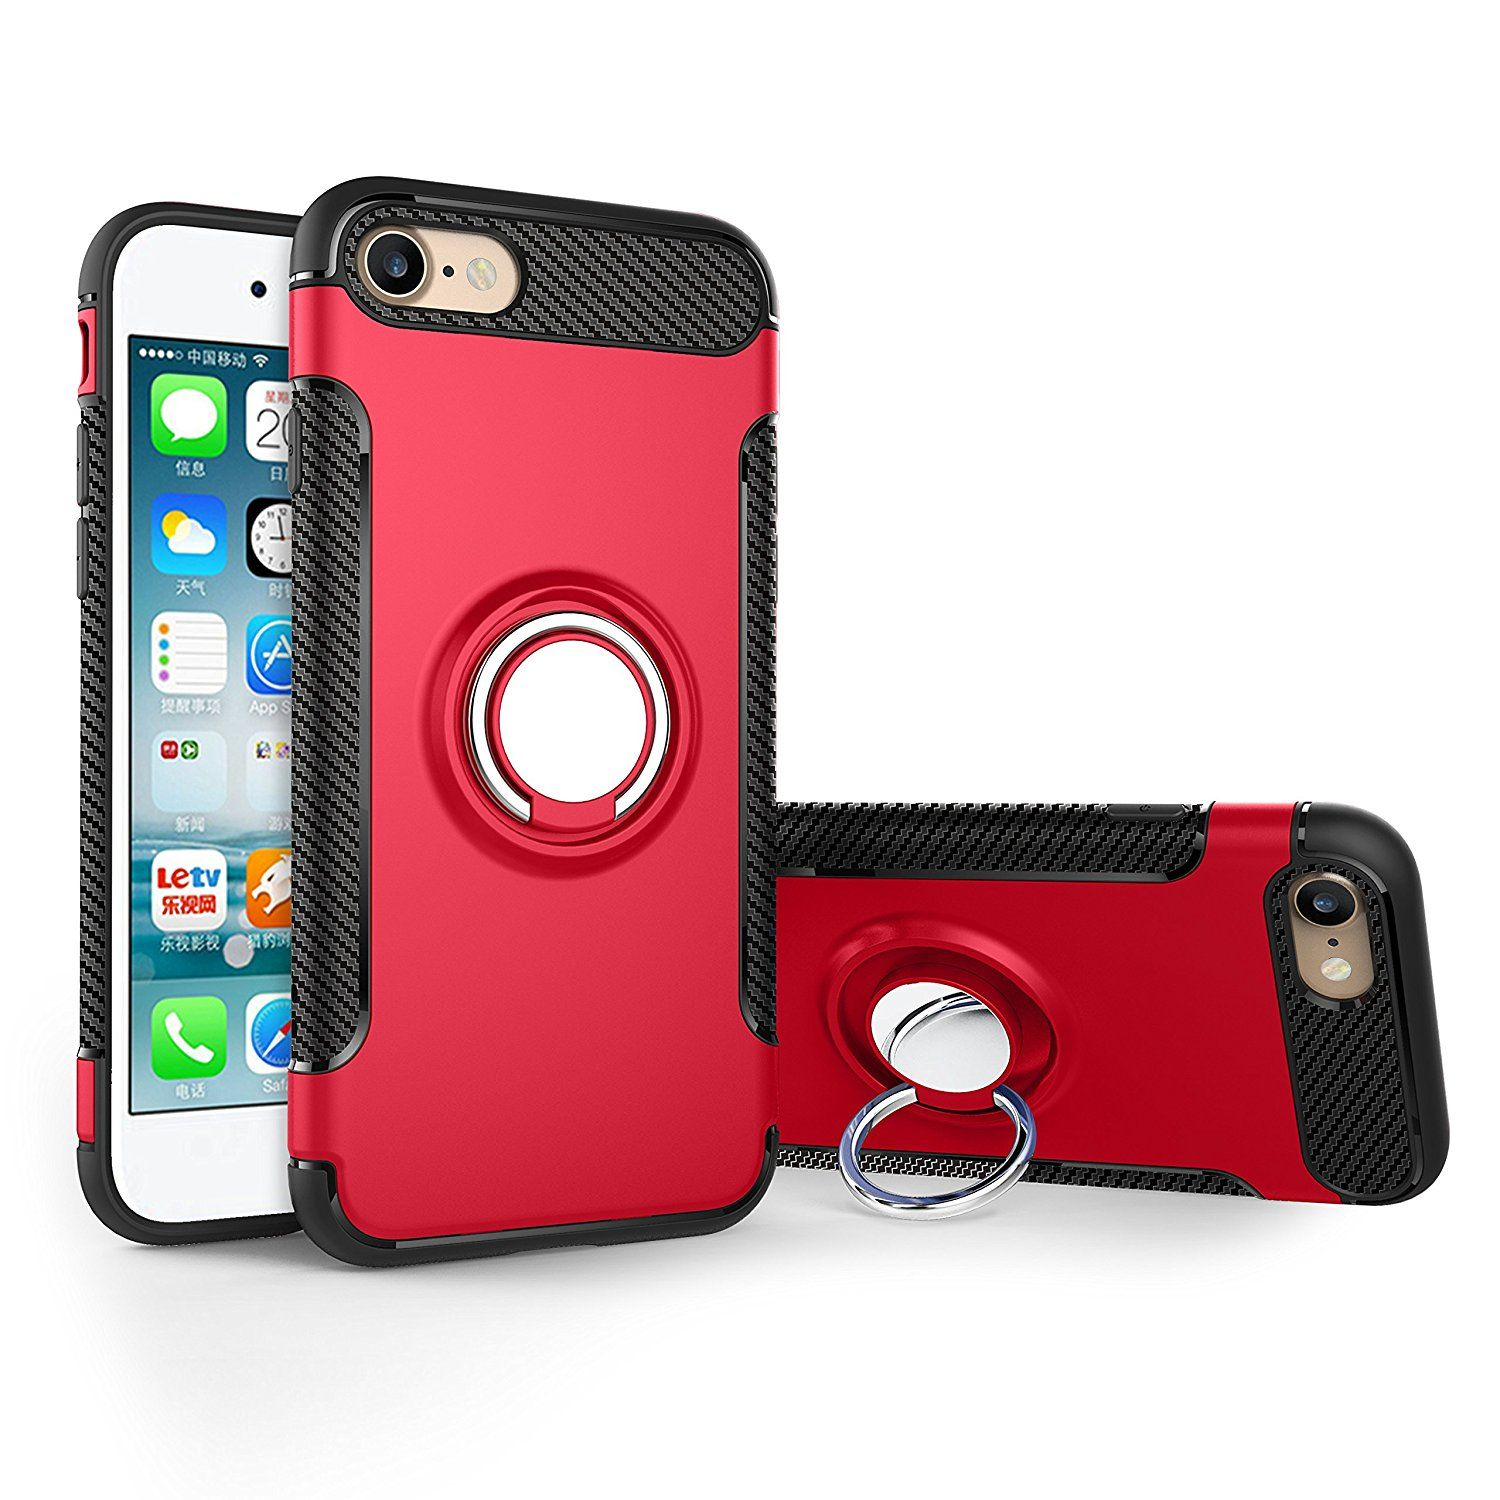 Ownest Iphone 7 Case Iphone 8 Case Armor Dual Layer 2 In 1 With Extreme Heavy Duty Protection And Finger Ring Holder K Iphone Cases Car Holder Iphone 5s Covers